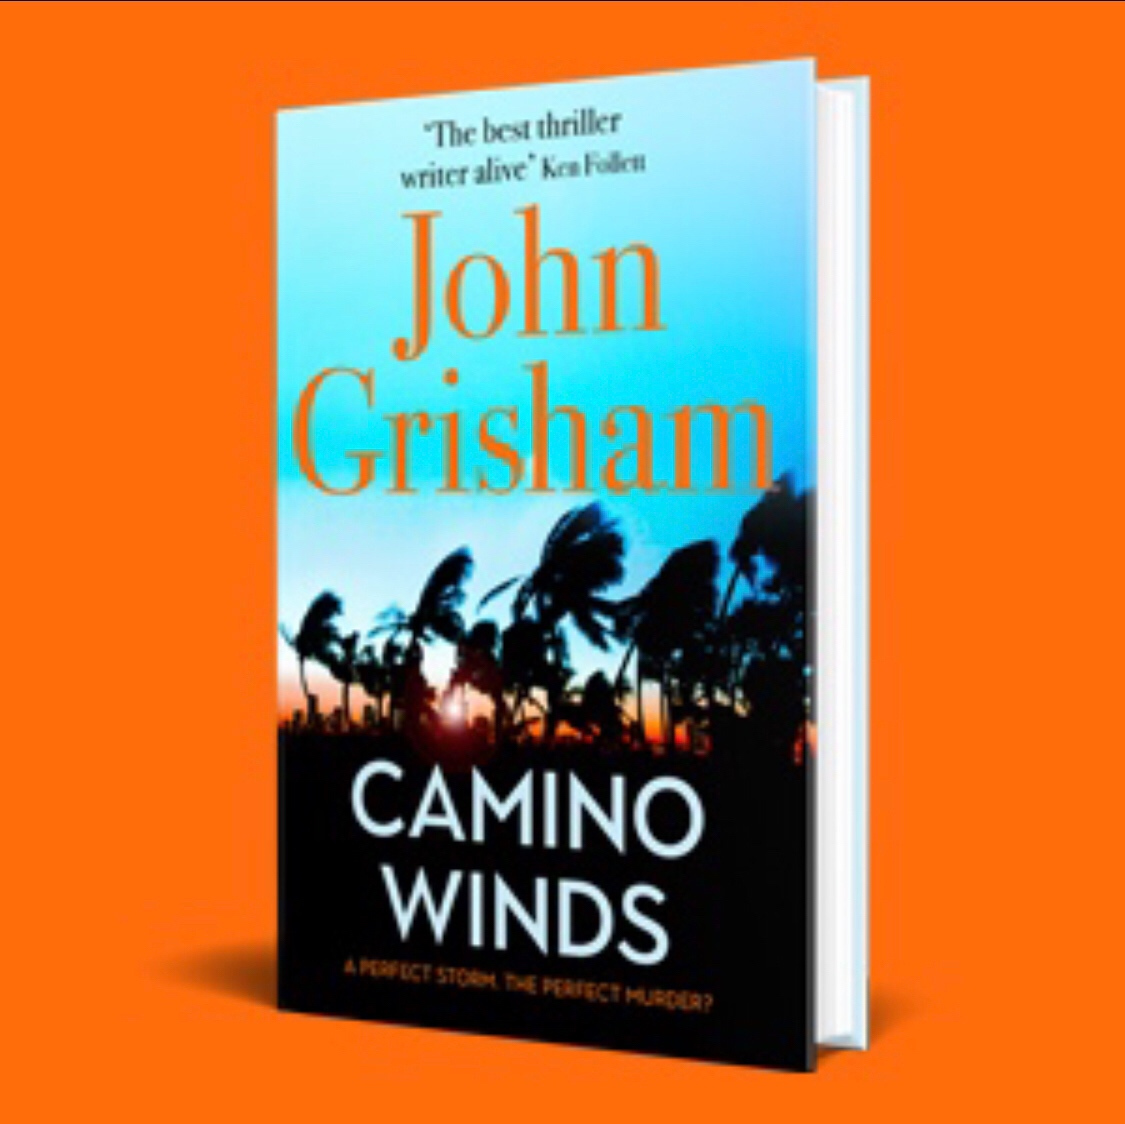 Camino Winds John Grisham - Rs. 2495 - 10% Off Order Now At: https://t.co/HPTJYKTtv7  #CaminoWinds #JohnGrisham #Readings #ReadingsBookstore #ReadingsPK https://t.co/vH8ErhZZZX